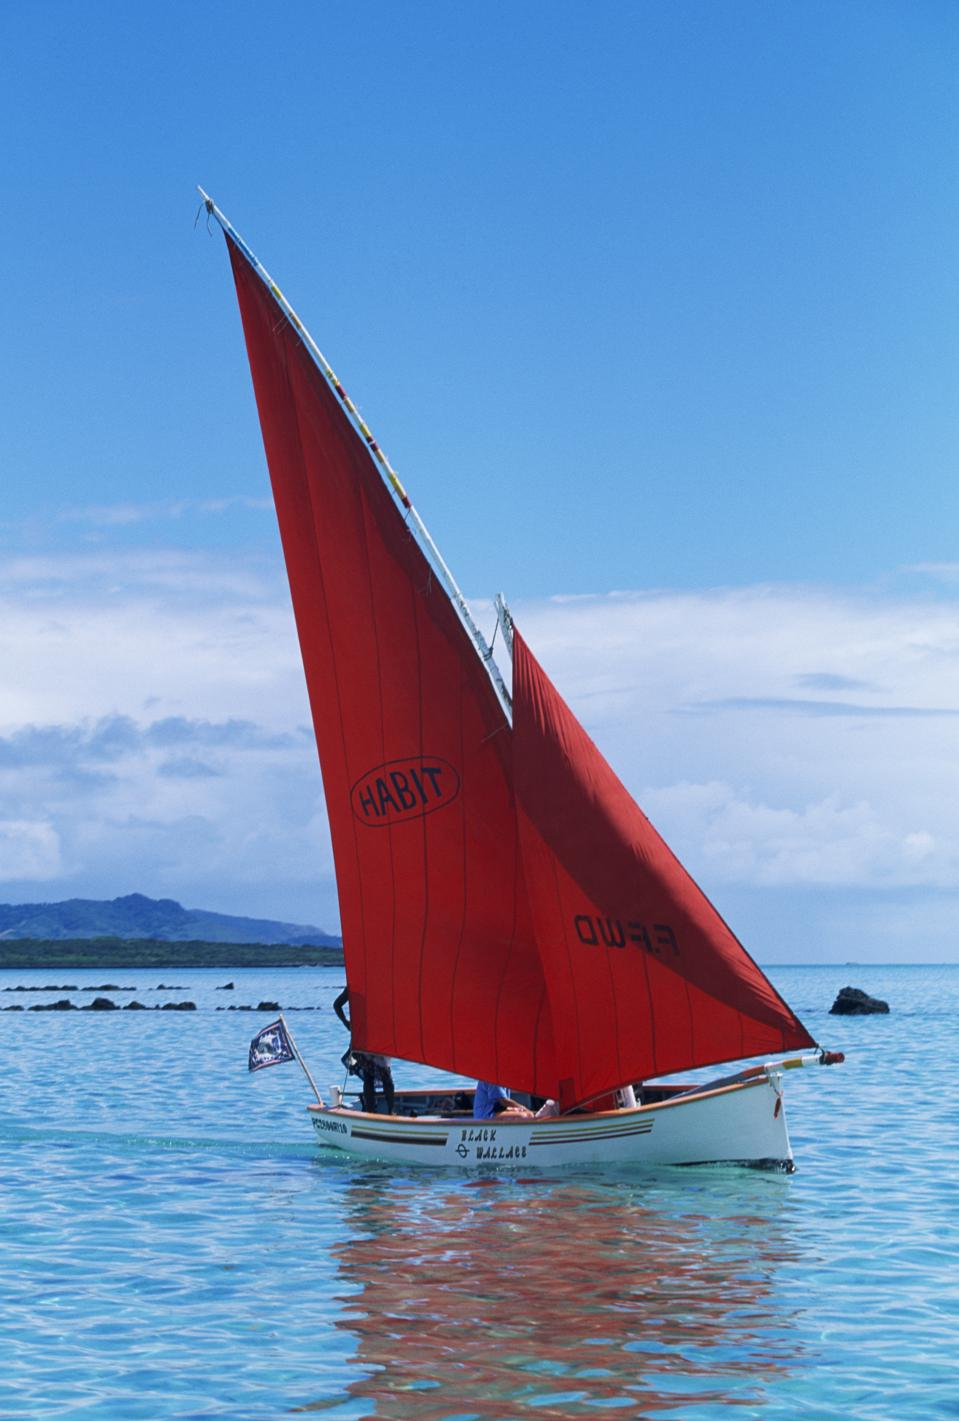 Mauritus' fishing boats within the lagoon tend to be small, wooden vessels for small quantities of fish